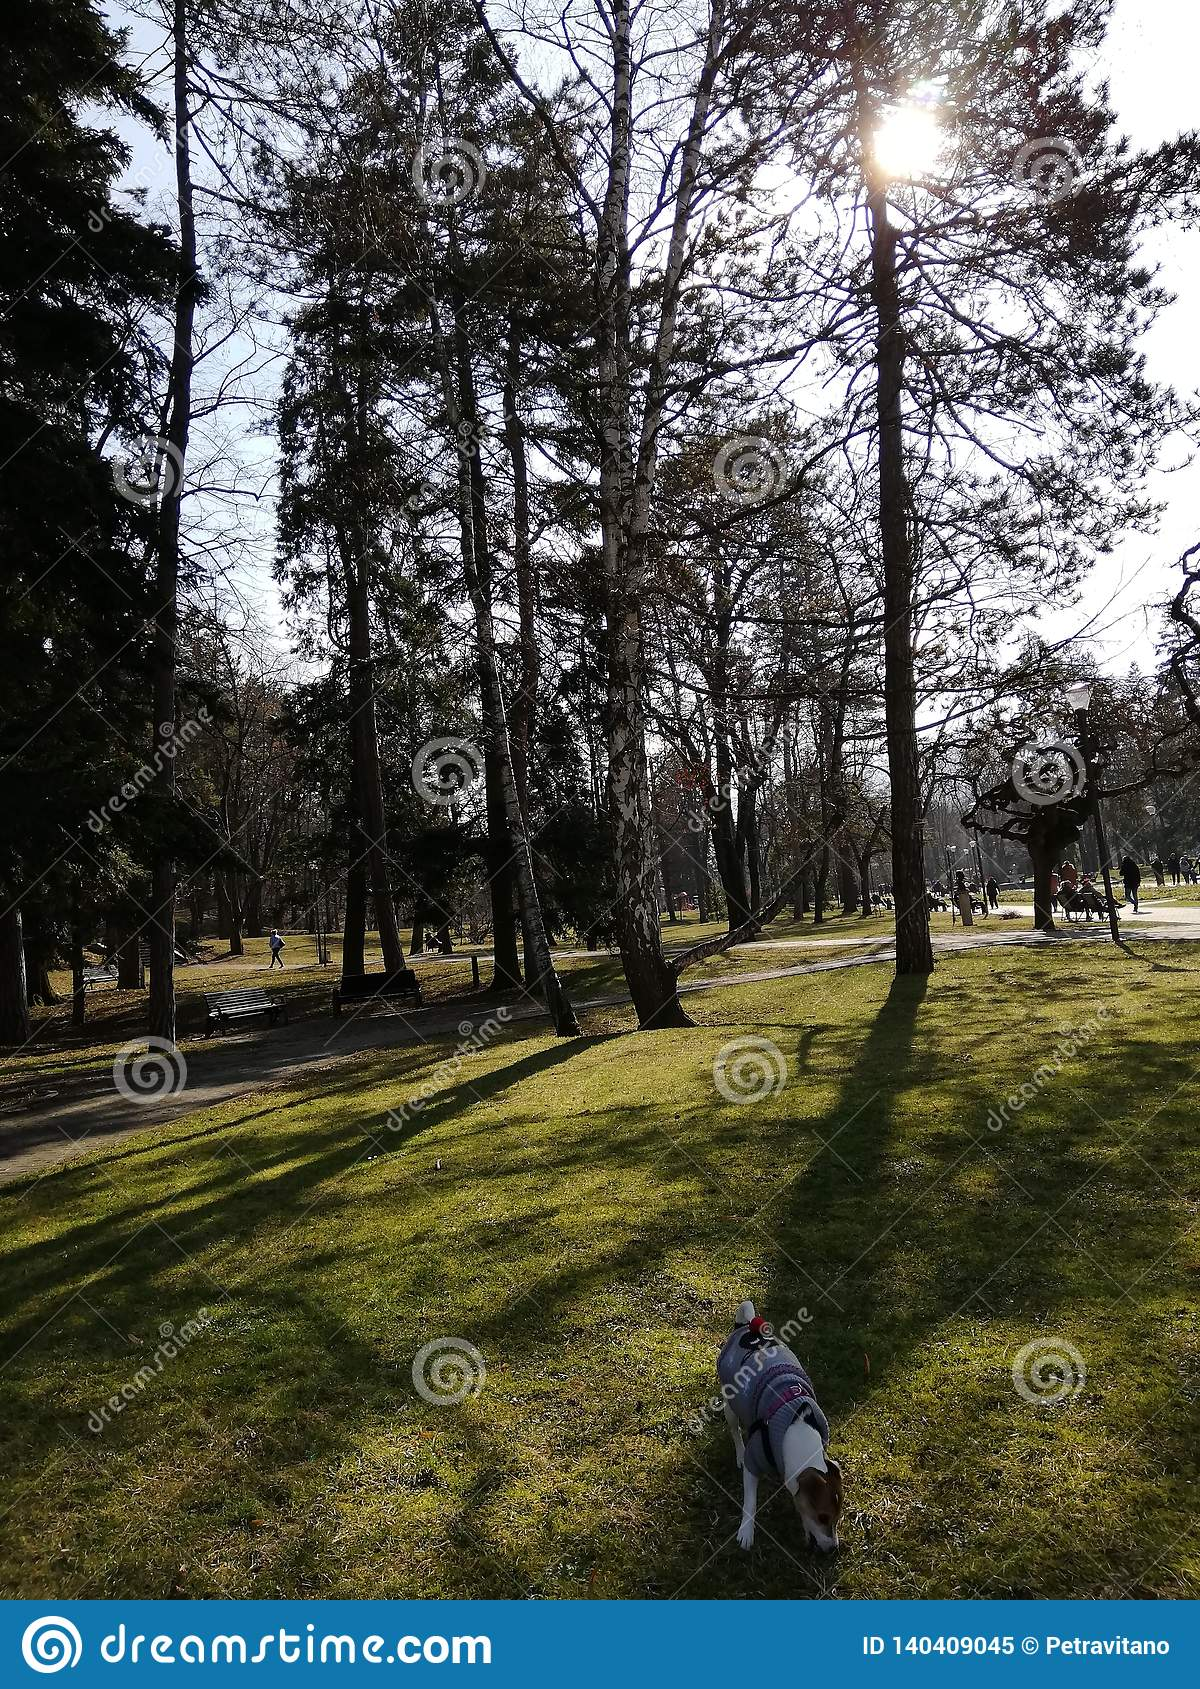 Park with dog